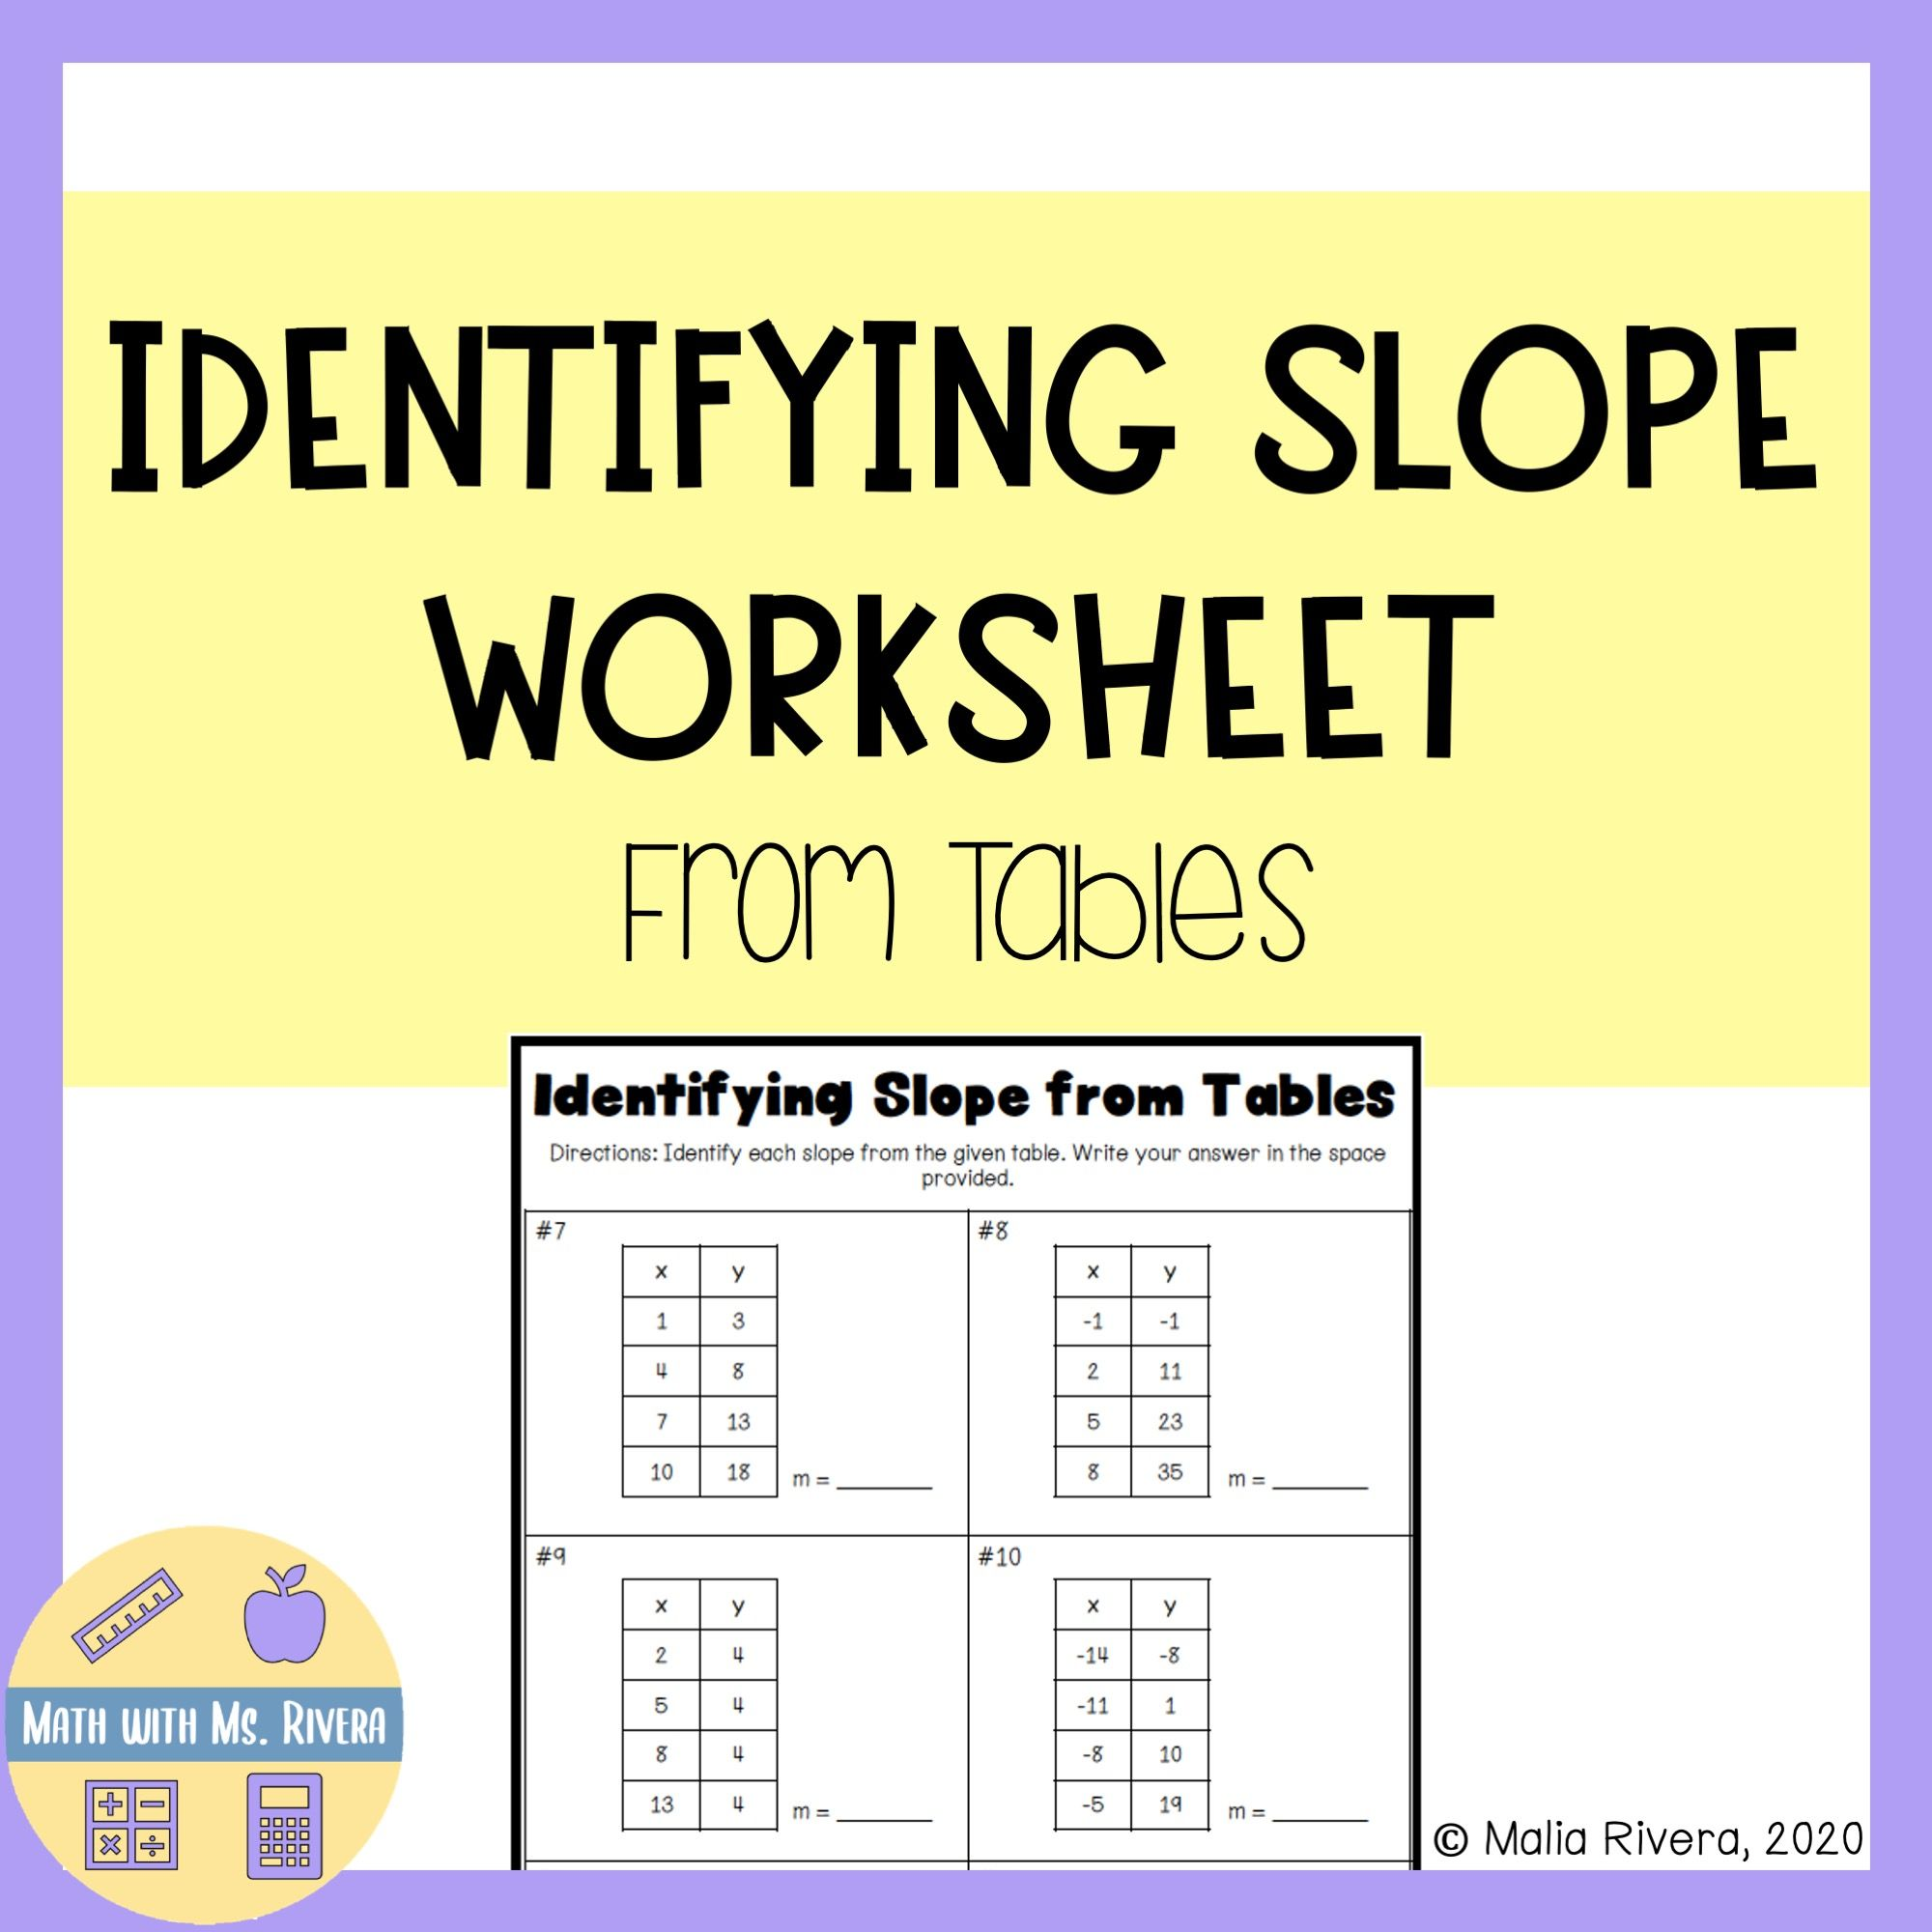 medium resolution of Identifying Slope from Tables Worksheet   Math practice worksheets